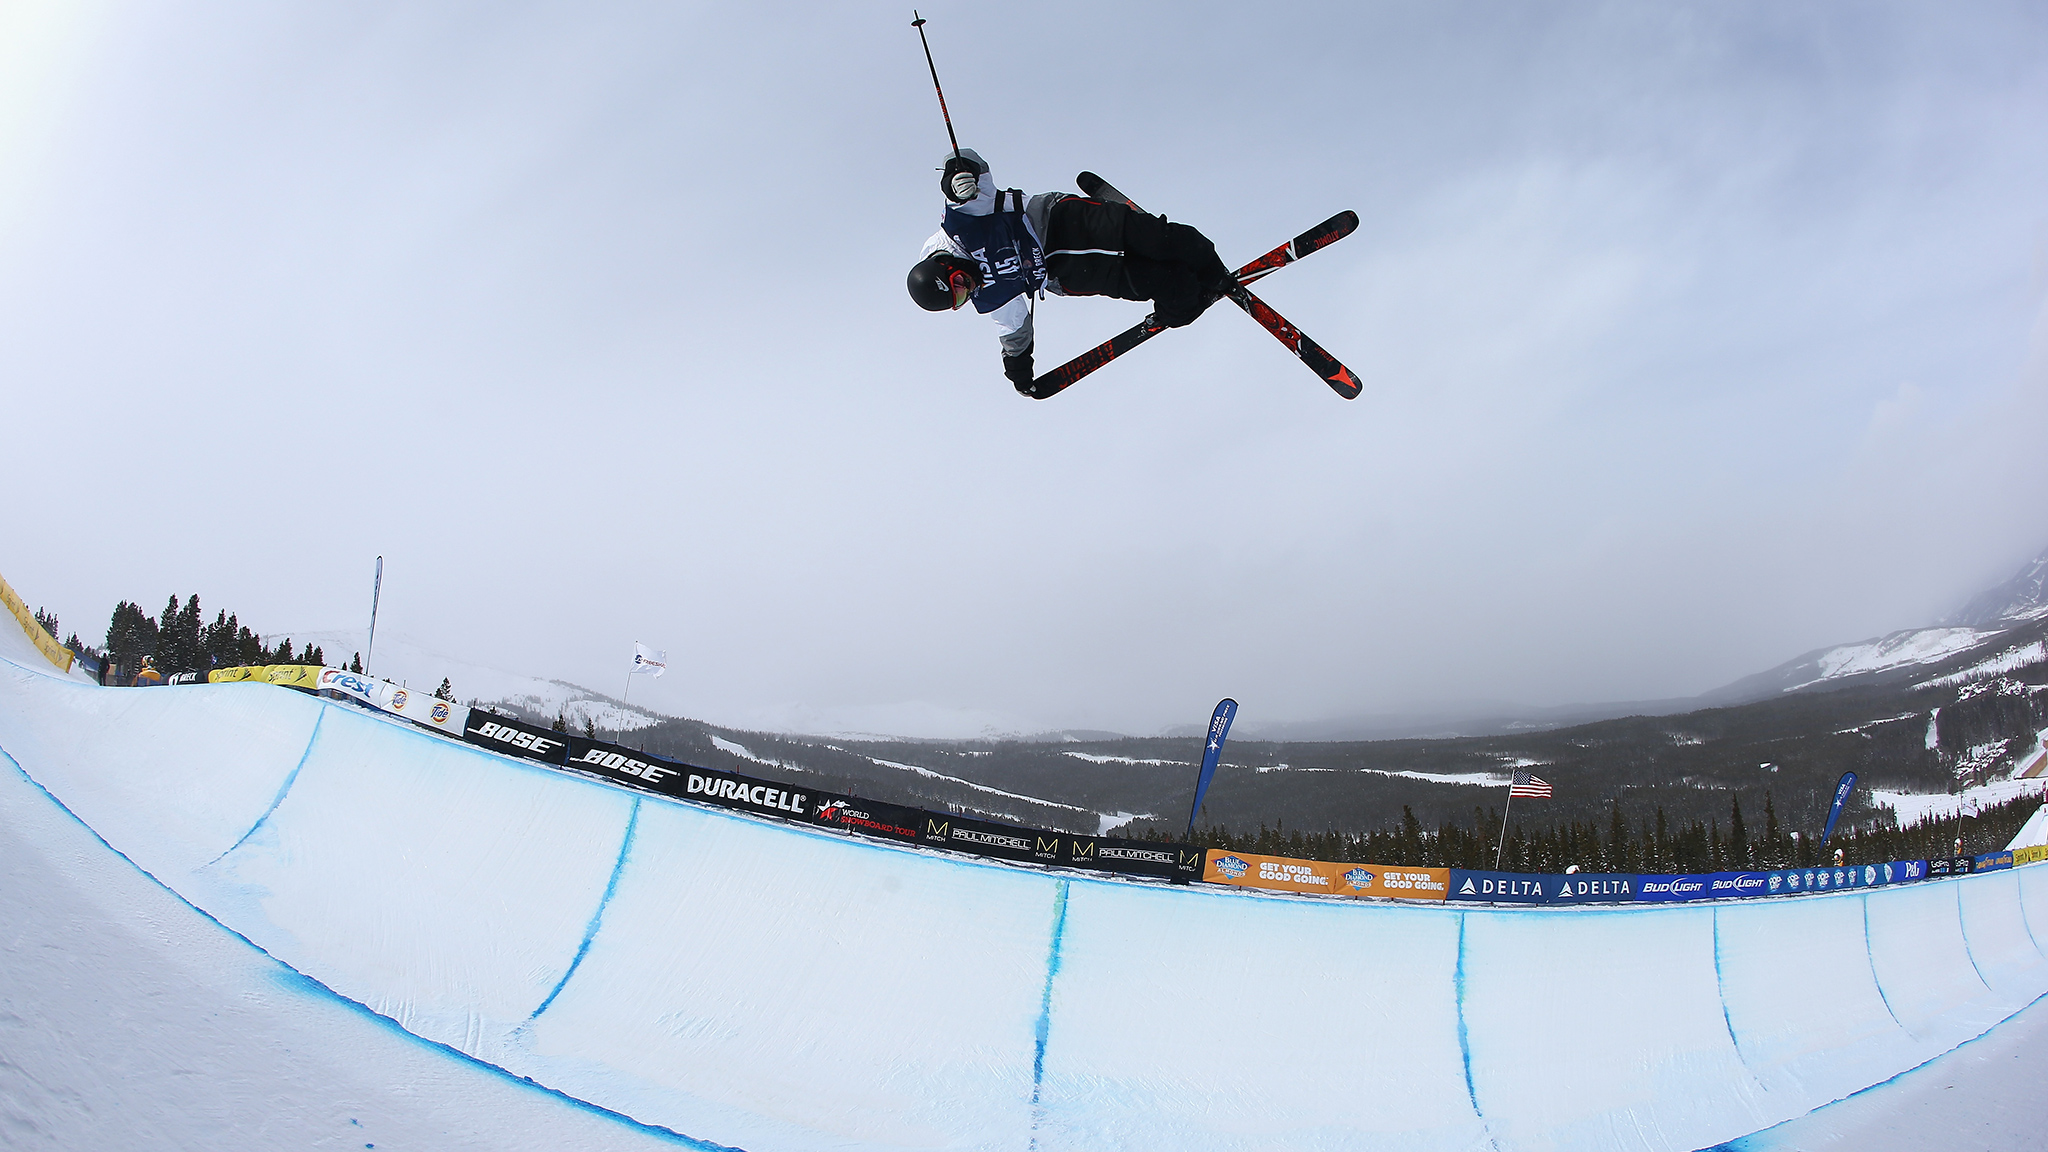 Double threat Gus Kenworthy had to let his qualification finish stand for his final placement when ski slopestyle was canceled on Friday, but was able to ride in Sunday's pipe finals.